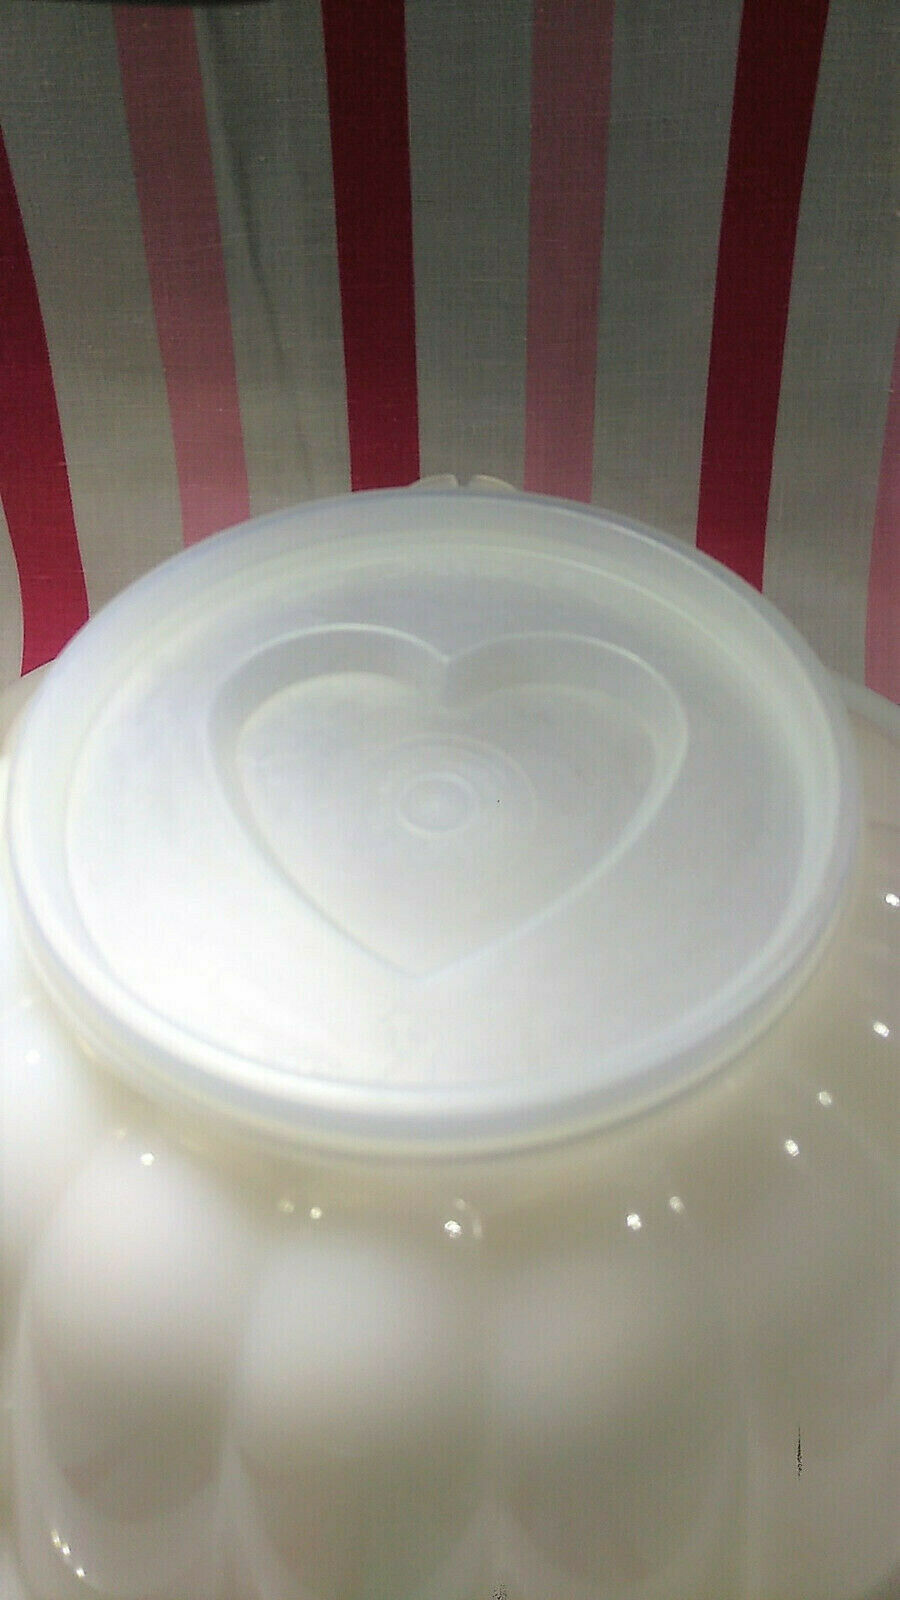 FUN Vintage Tupperware Jel-N-Serve Mold With White Tray and Heart Design Top image 5